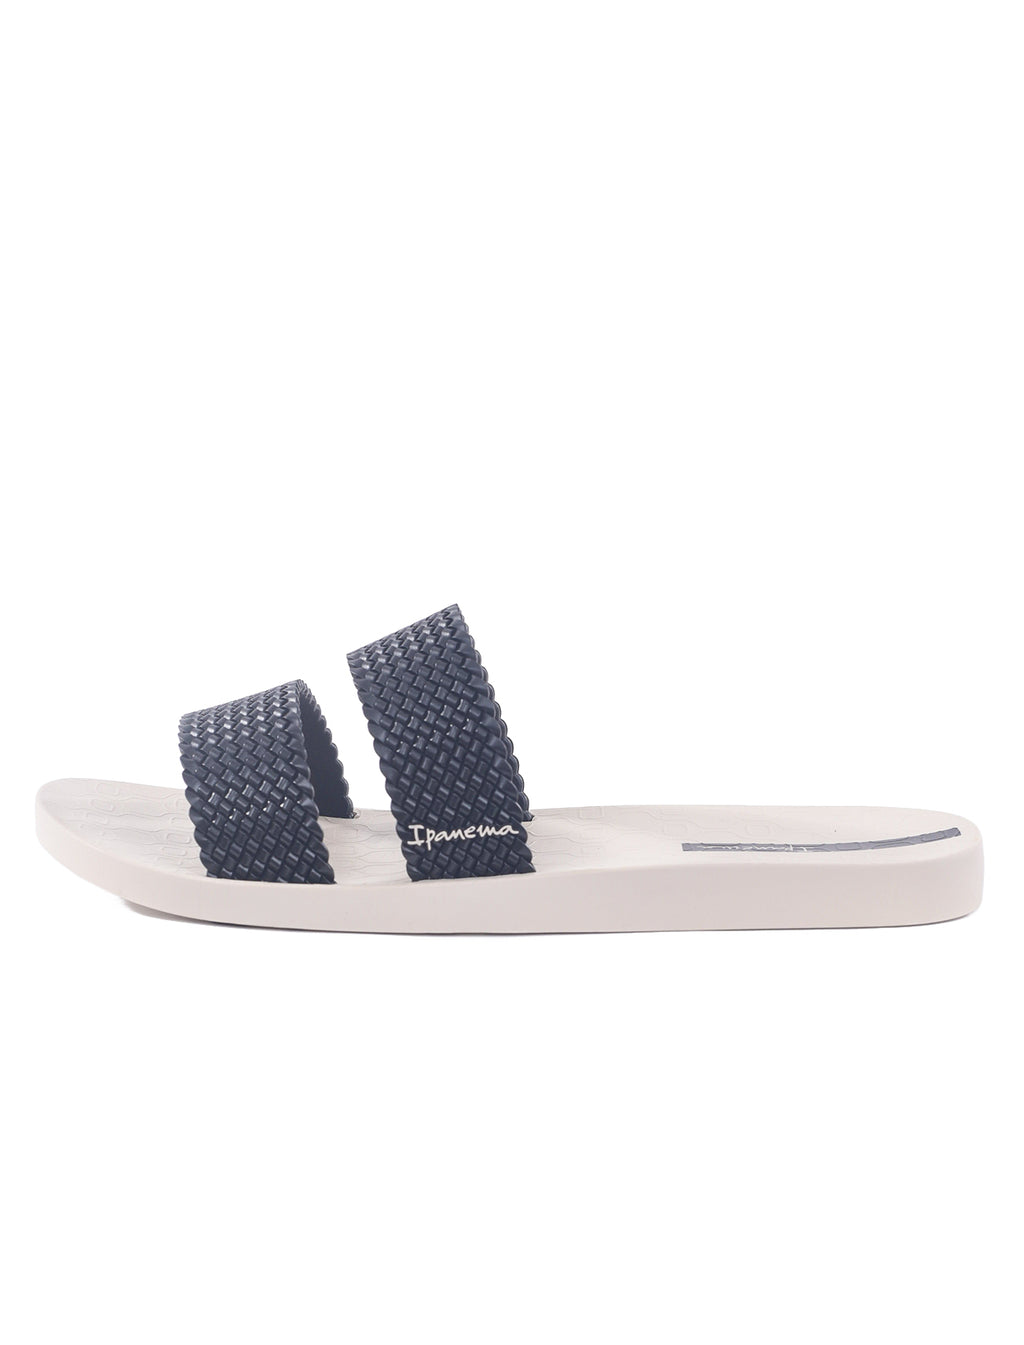 Ipanema City Slides, Black/Beige